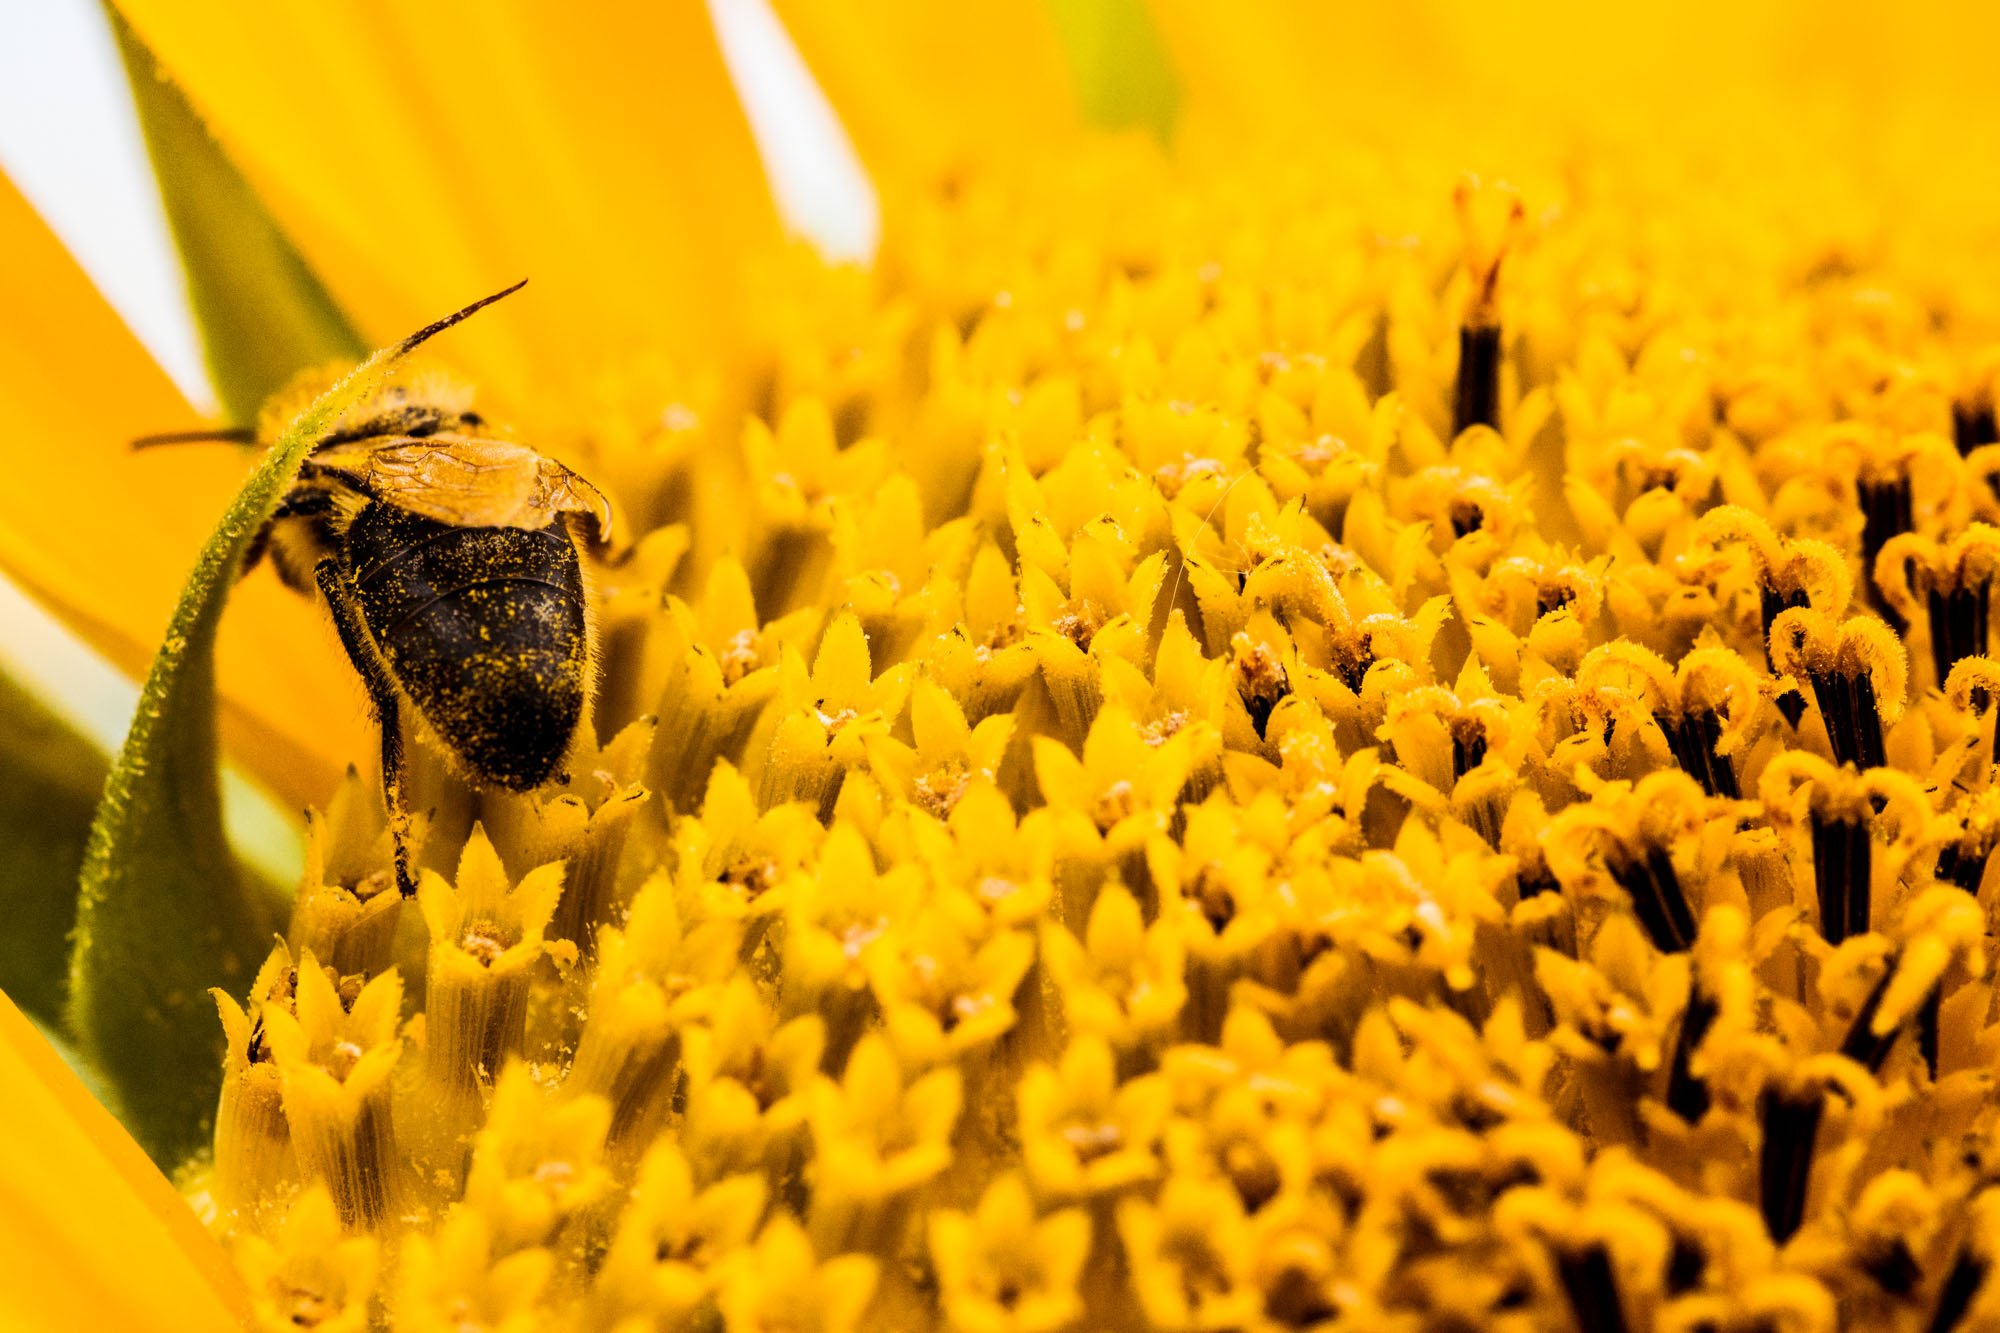 Honey bee on a sunflower in Sukhbaatar, Mongolia